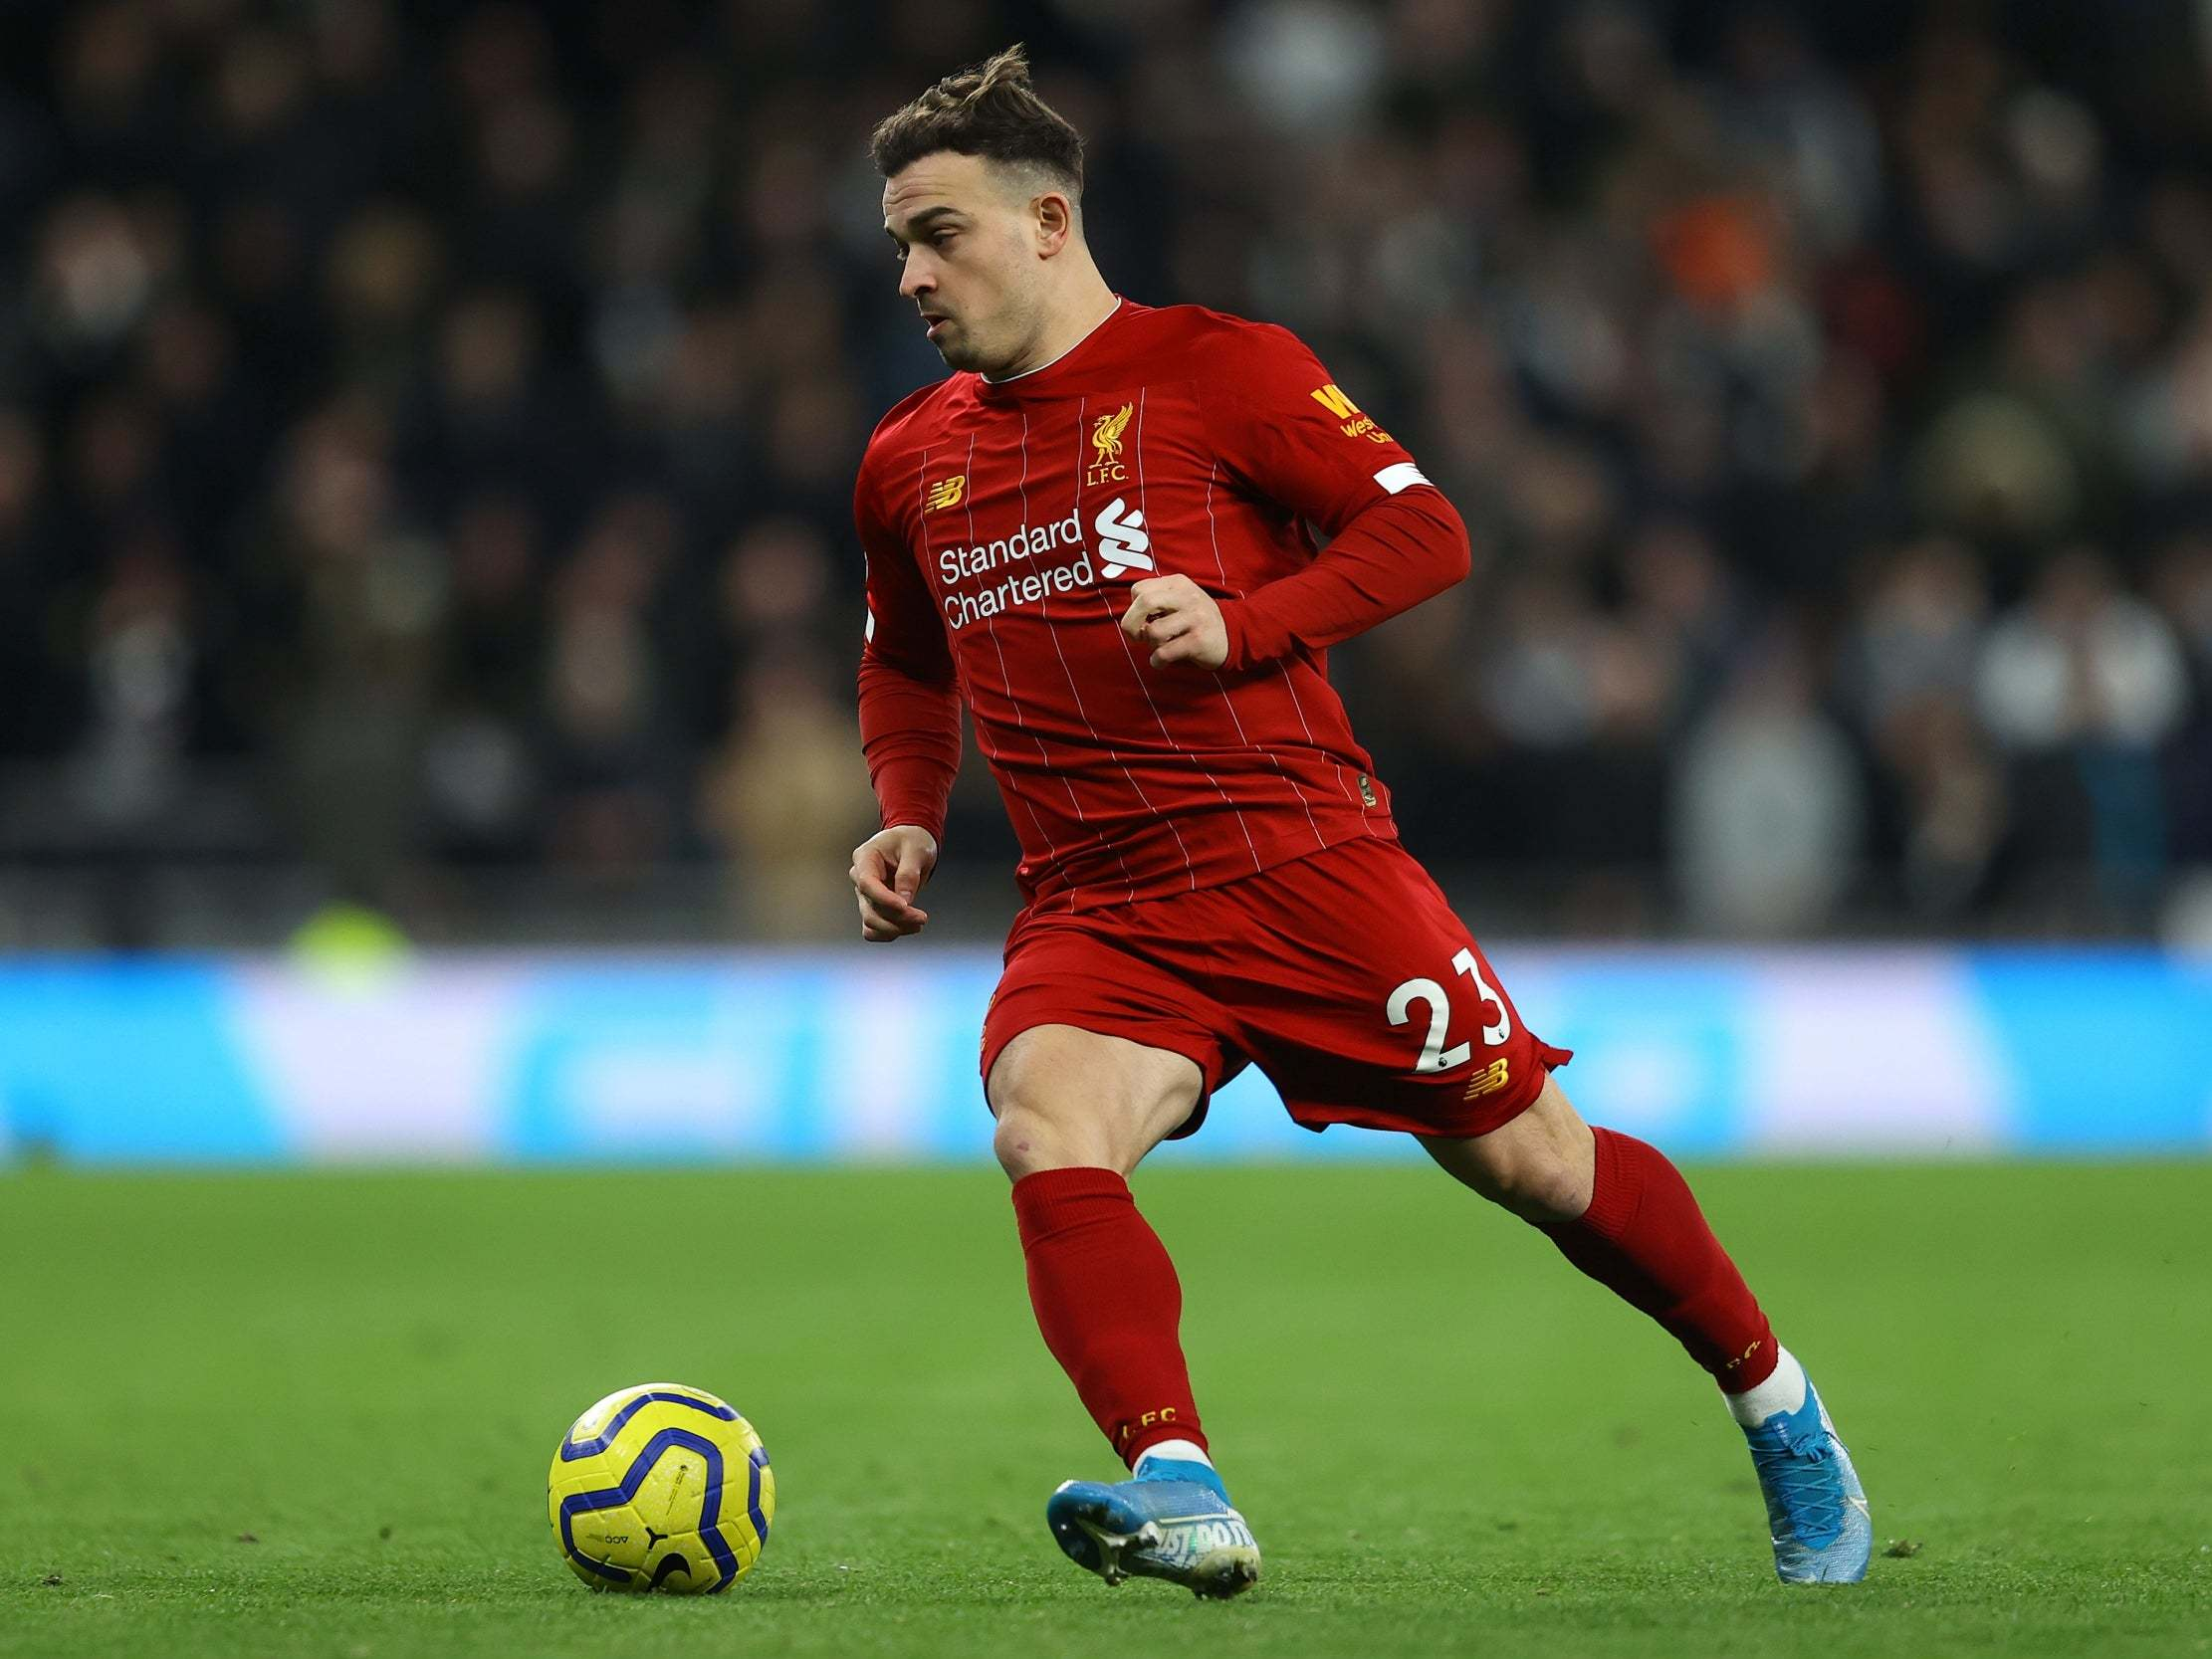 Liverpool Transfer News Jurgen Klopp S Verdict On Xherdan Shaqiri S Future The Independent The Independent